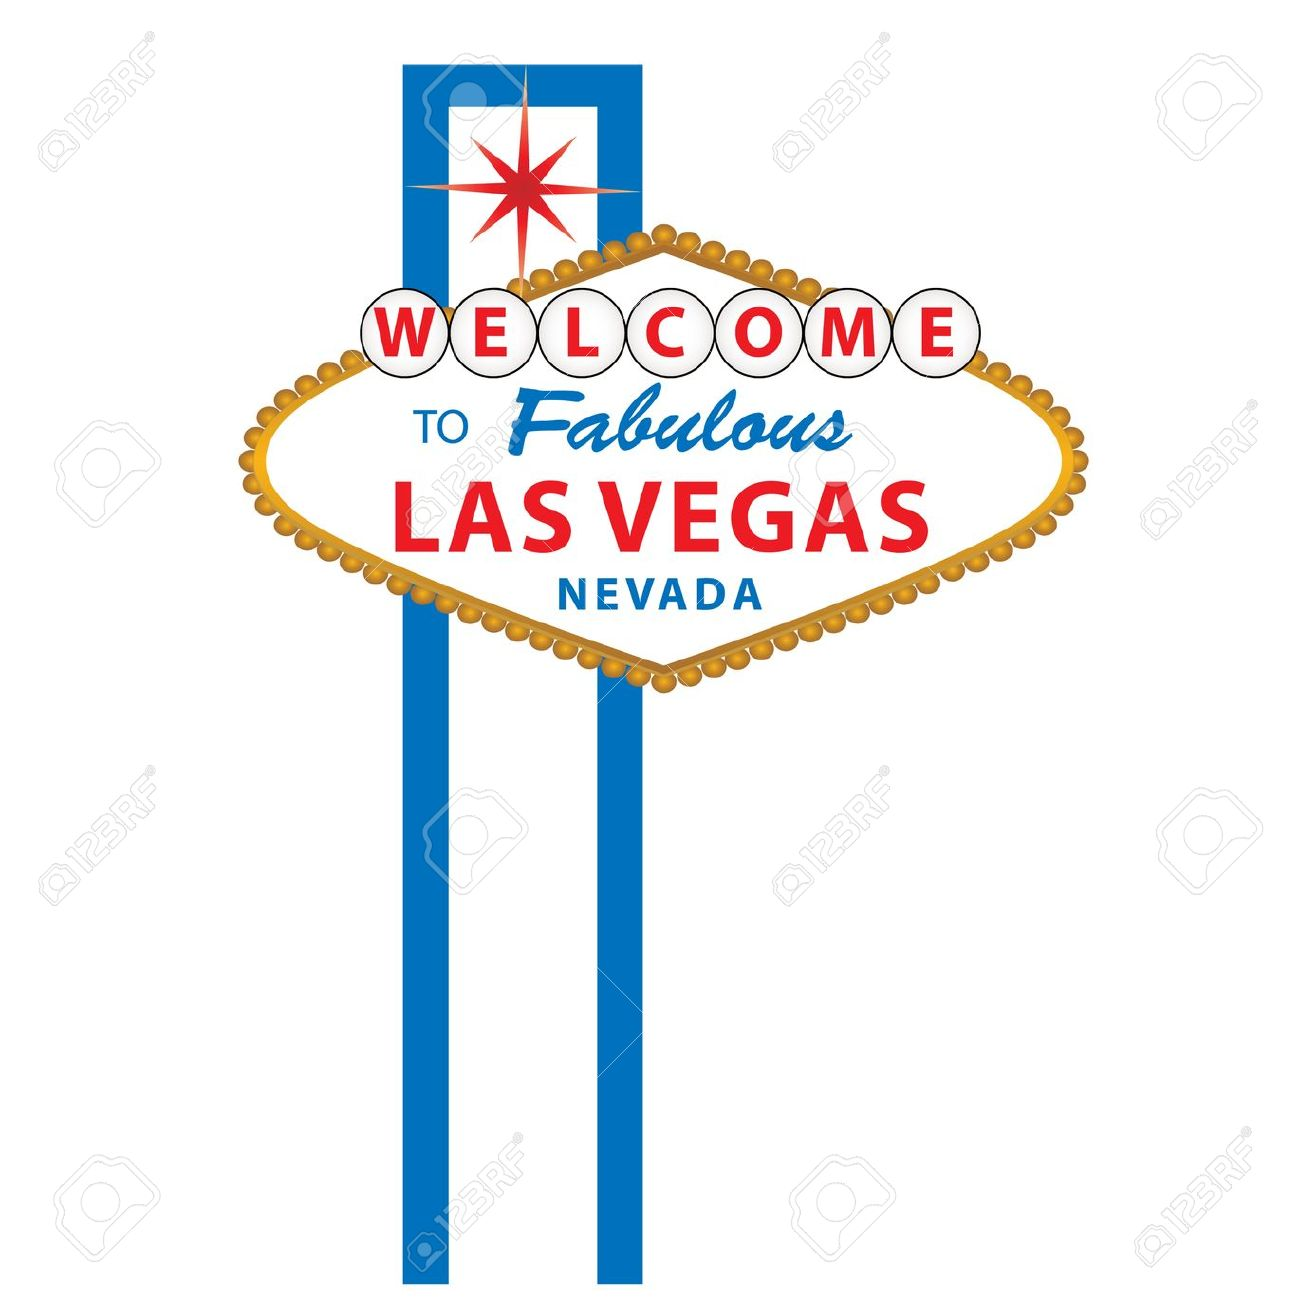 las vegas: Welcome to Fabulous .